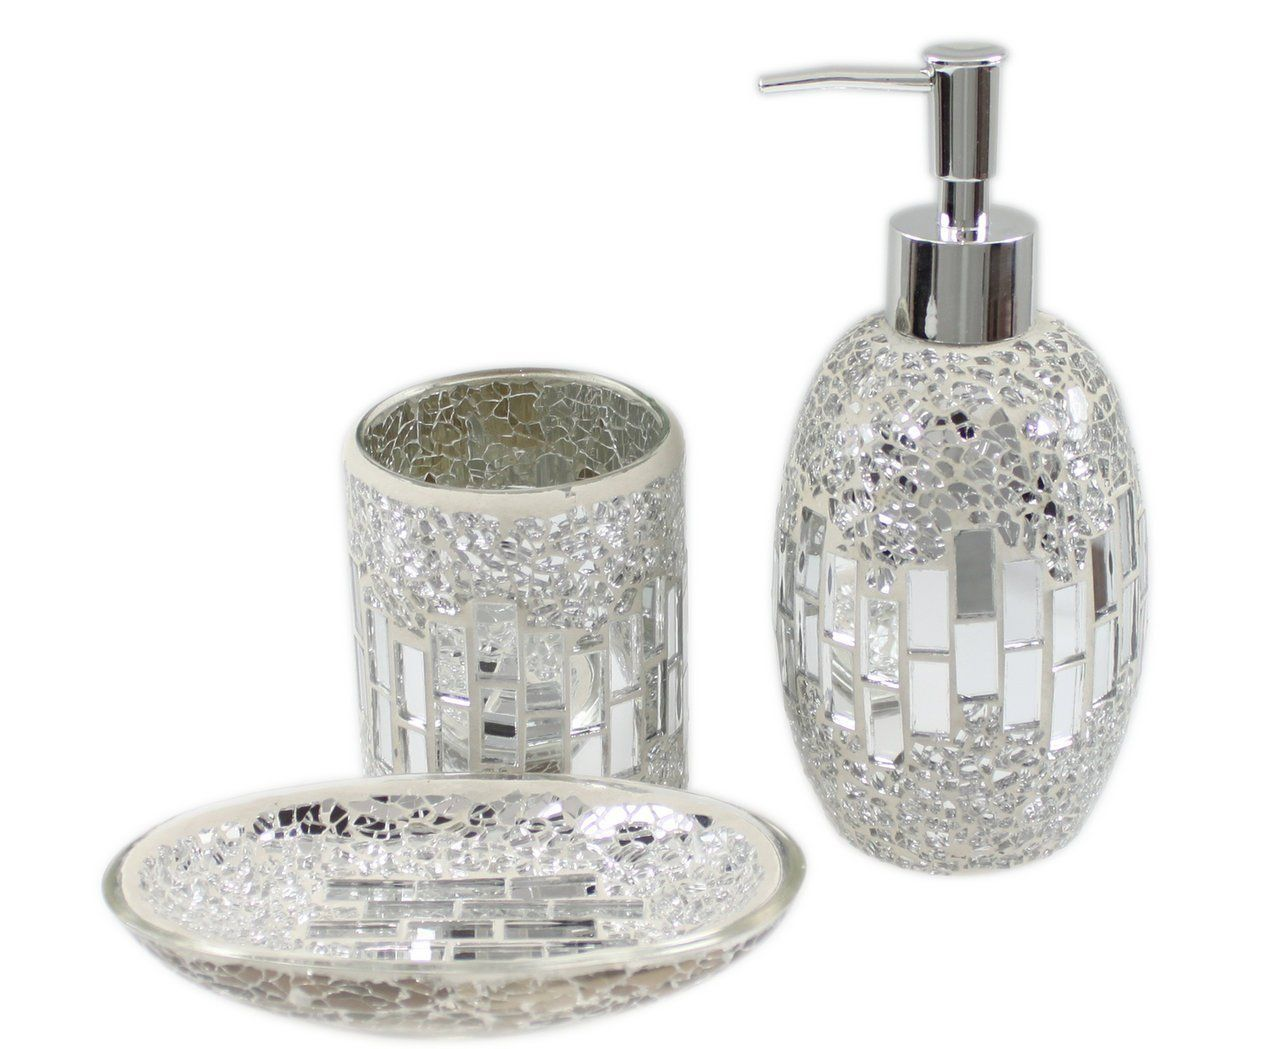 Cool Bathroom Accessories Uk 3 piece modern silver chrome sparkle mosaic glass tile bathroom